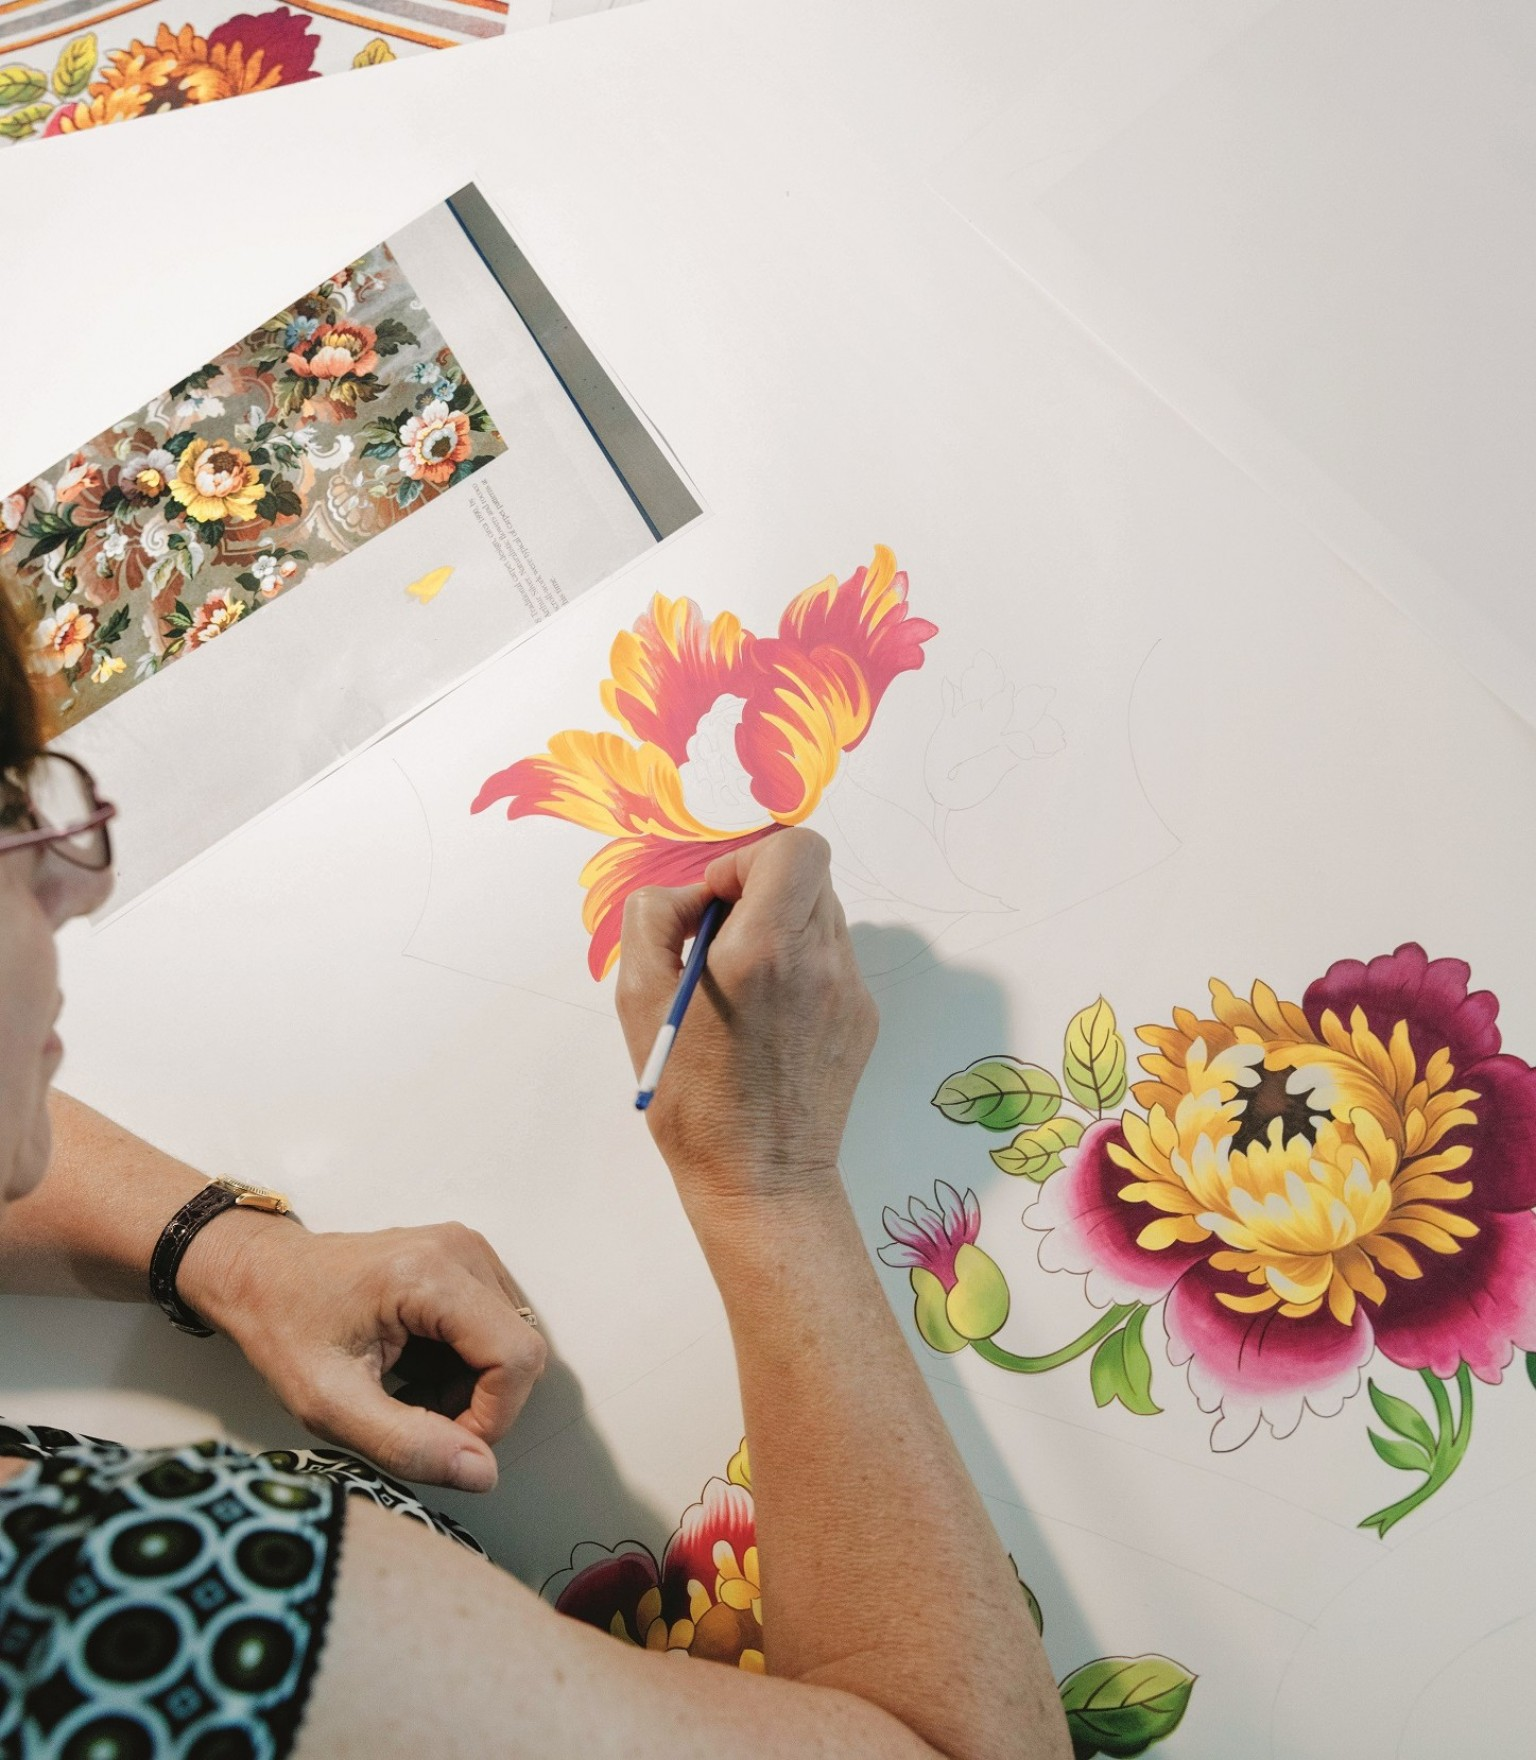 A floral design is painted on paper